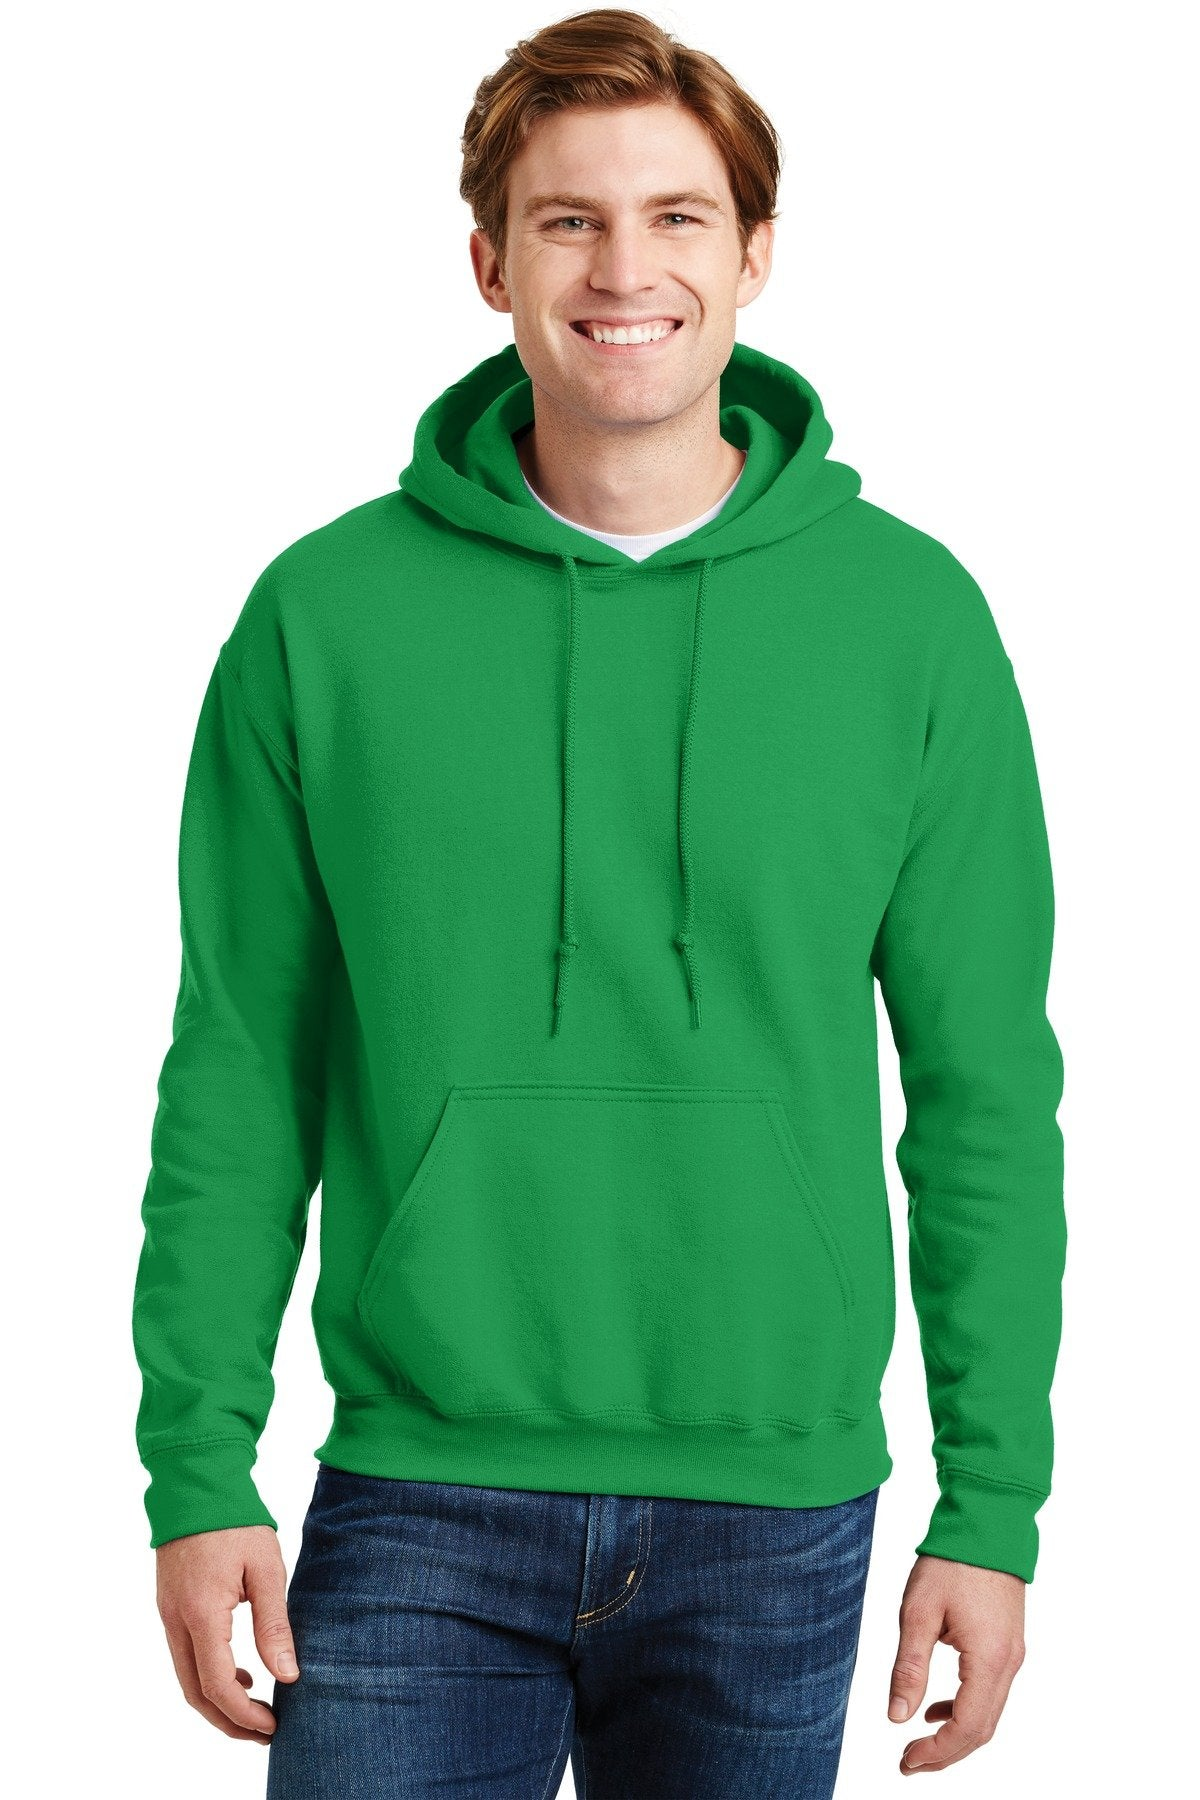 Irish Green - Gildan 12500